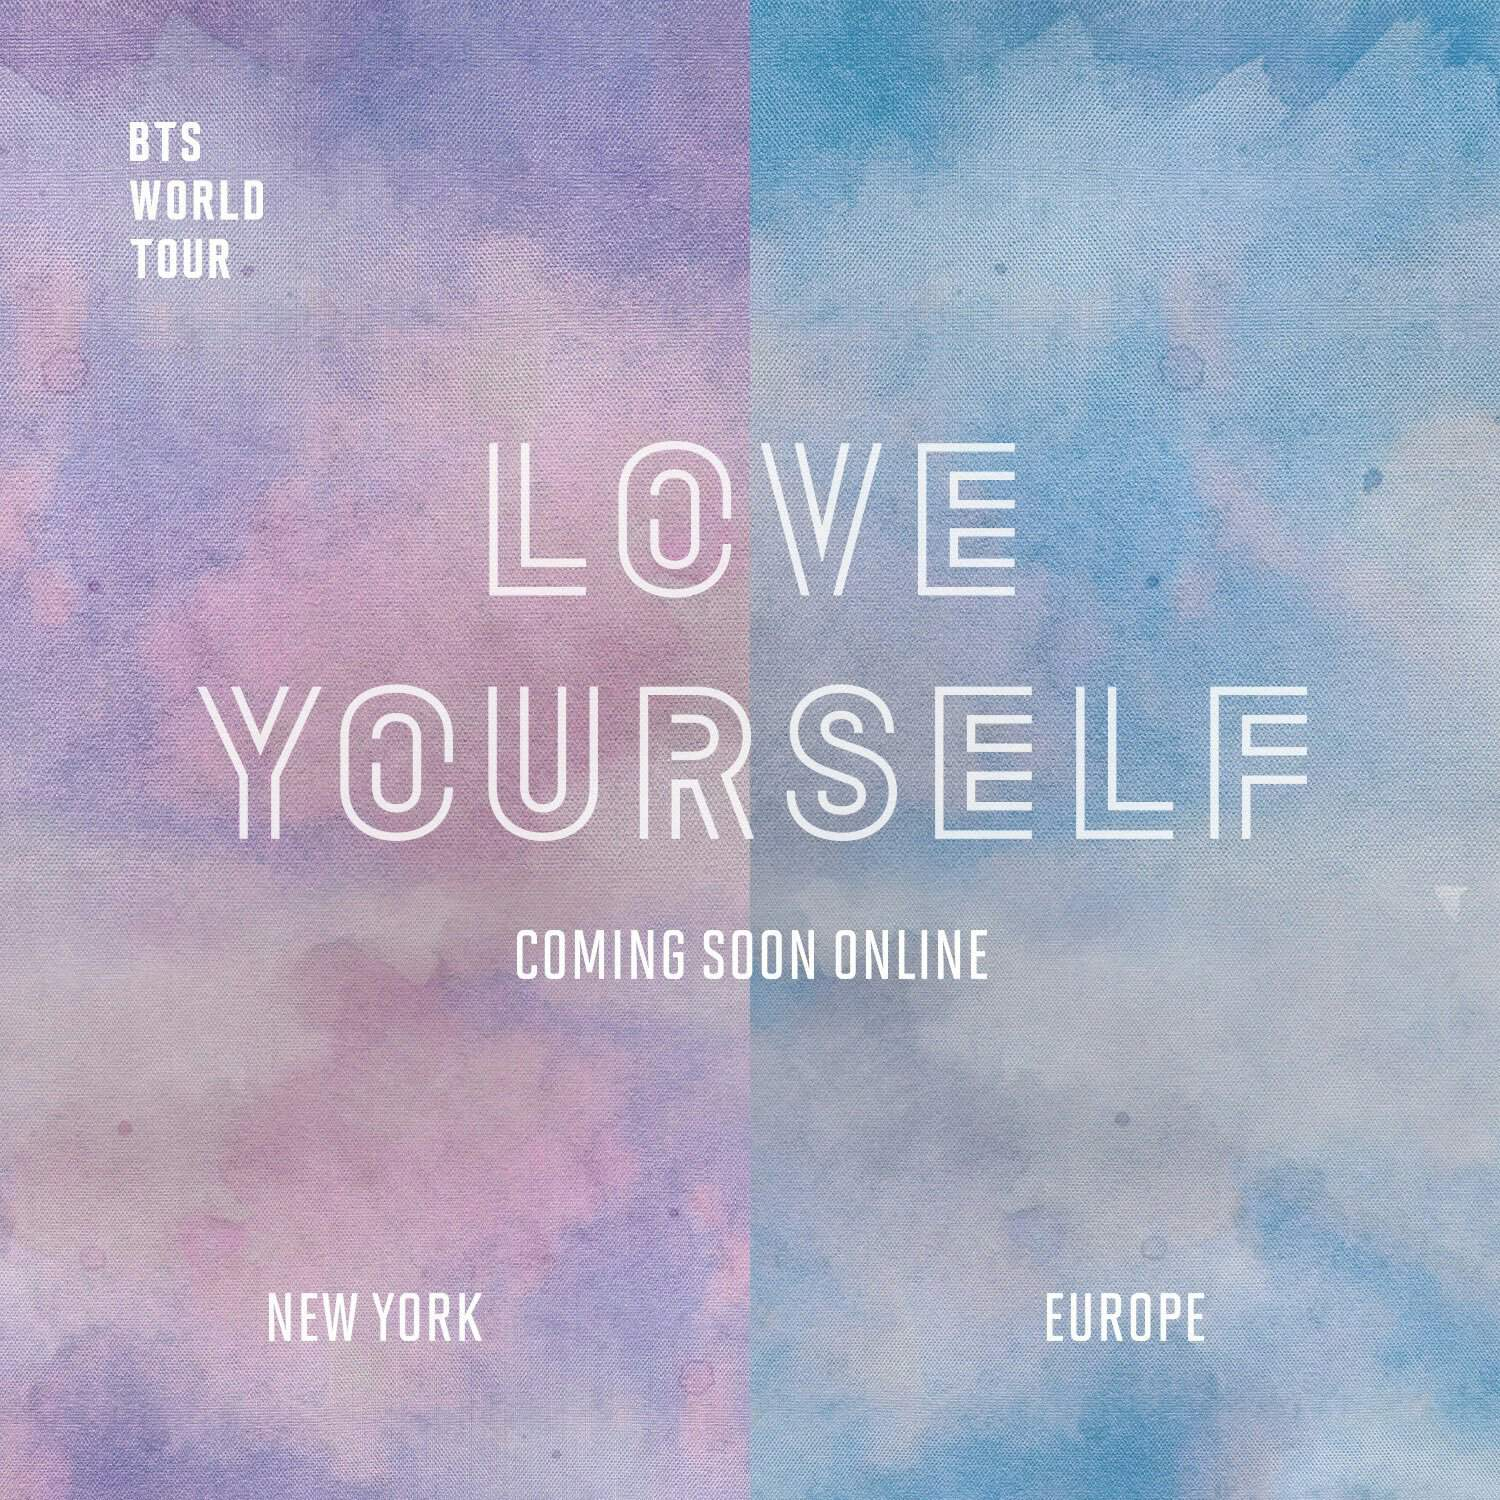 BTS Love Yourself Tour Europe / BTS Love Yourself Tour Europe